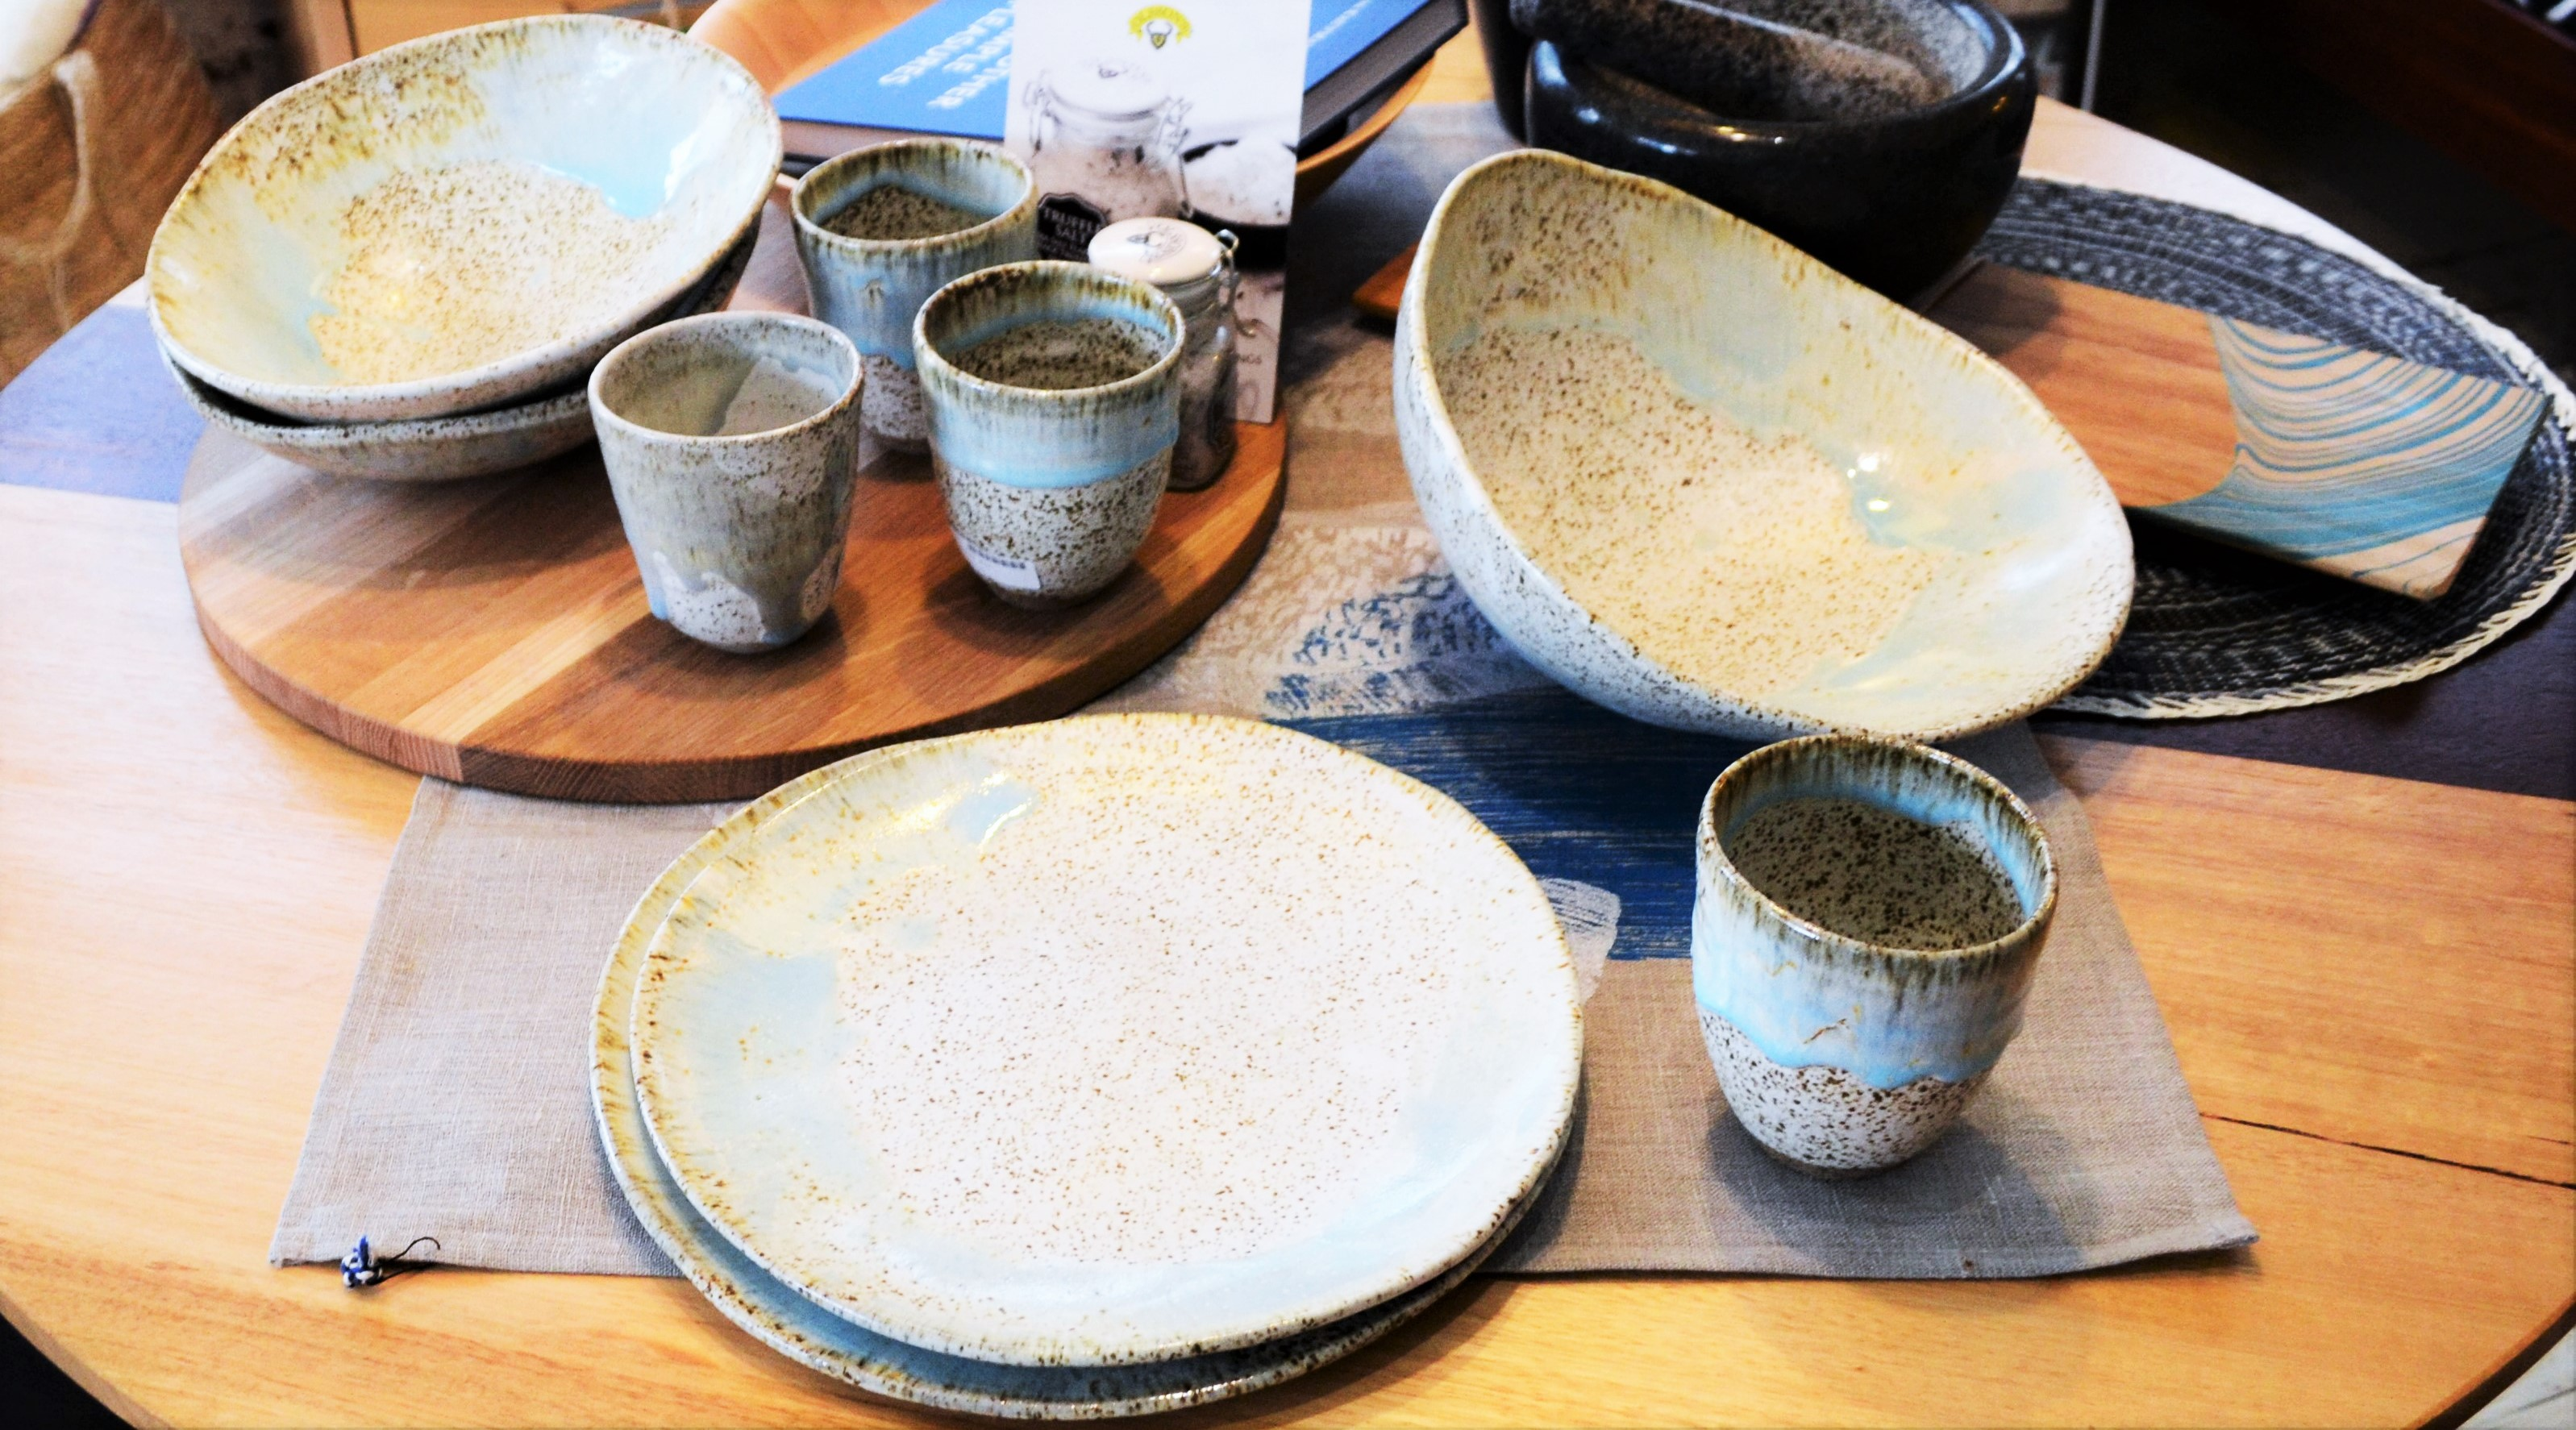 Samantha Robinson ceramics for sale at Wilkins and Kent